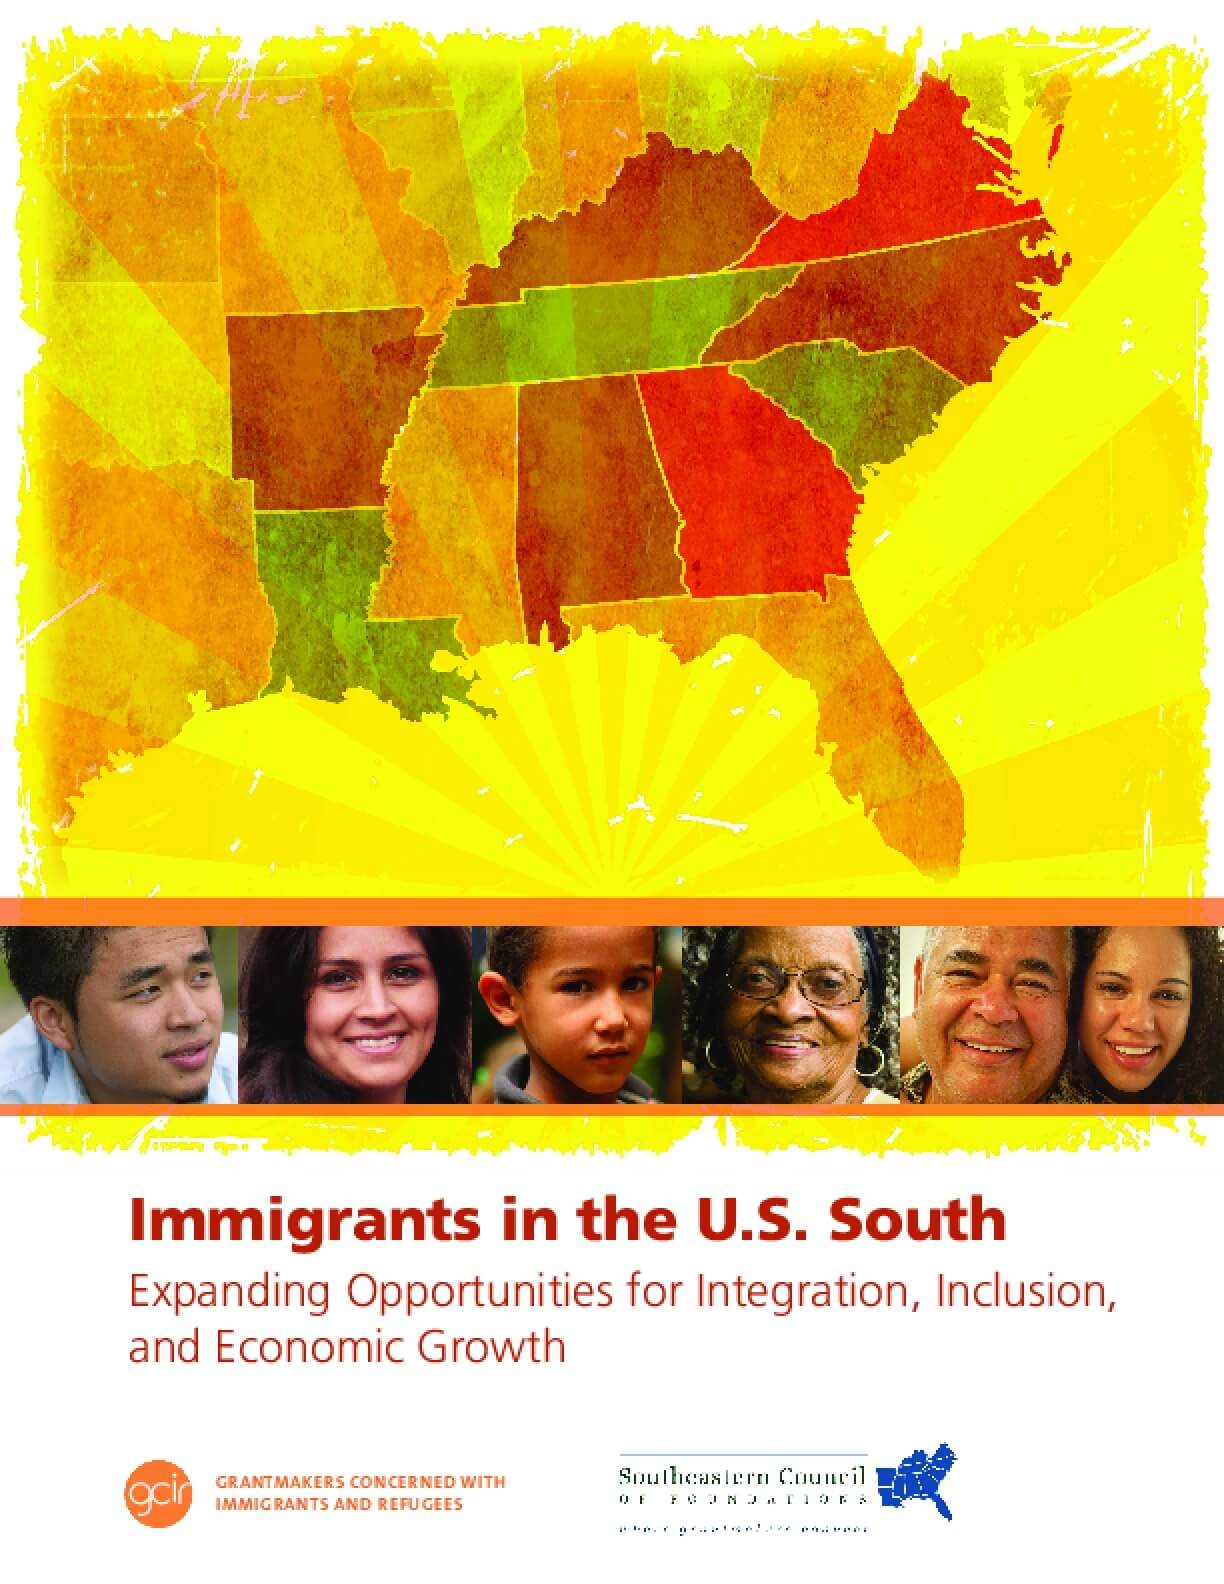 Immigrants in the U.S. South: Expanding Opportunities for Integration, Inclusion, and Economic Growth